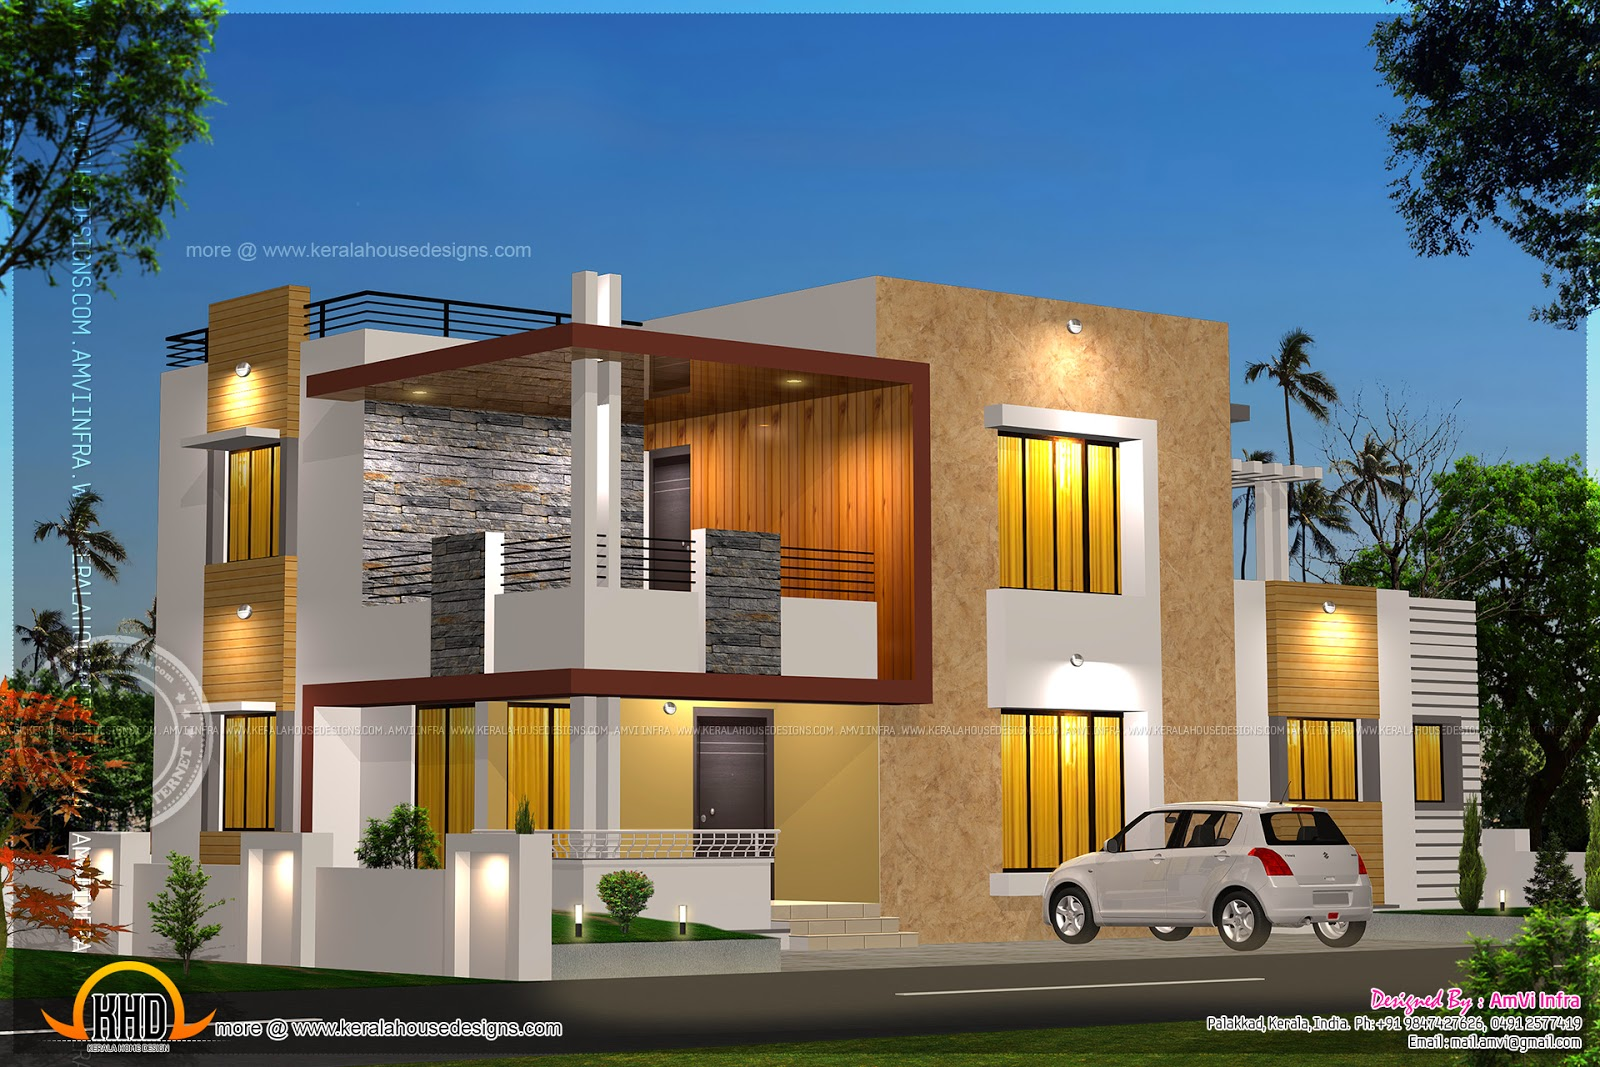 indian ground floor house design with Floor Plan And Elevation Of Modern House on Naya Nazimabad Housing City Karachi Bunglows Floor Planslayout Drawings further Taher ali kheriwala likewise Trendy South Indian House Design By together with Mylittleindianvilla blogspot besides 02.